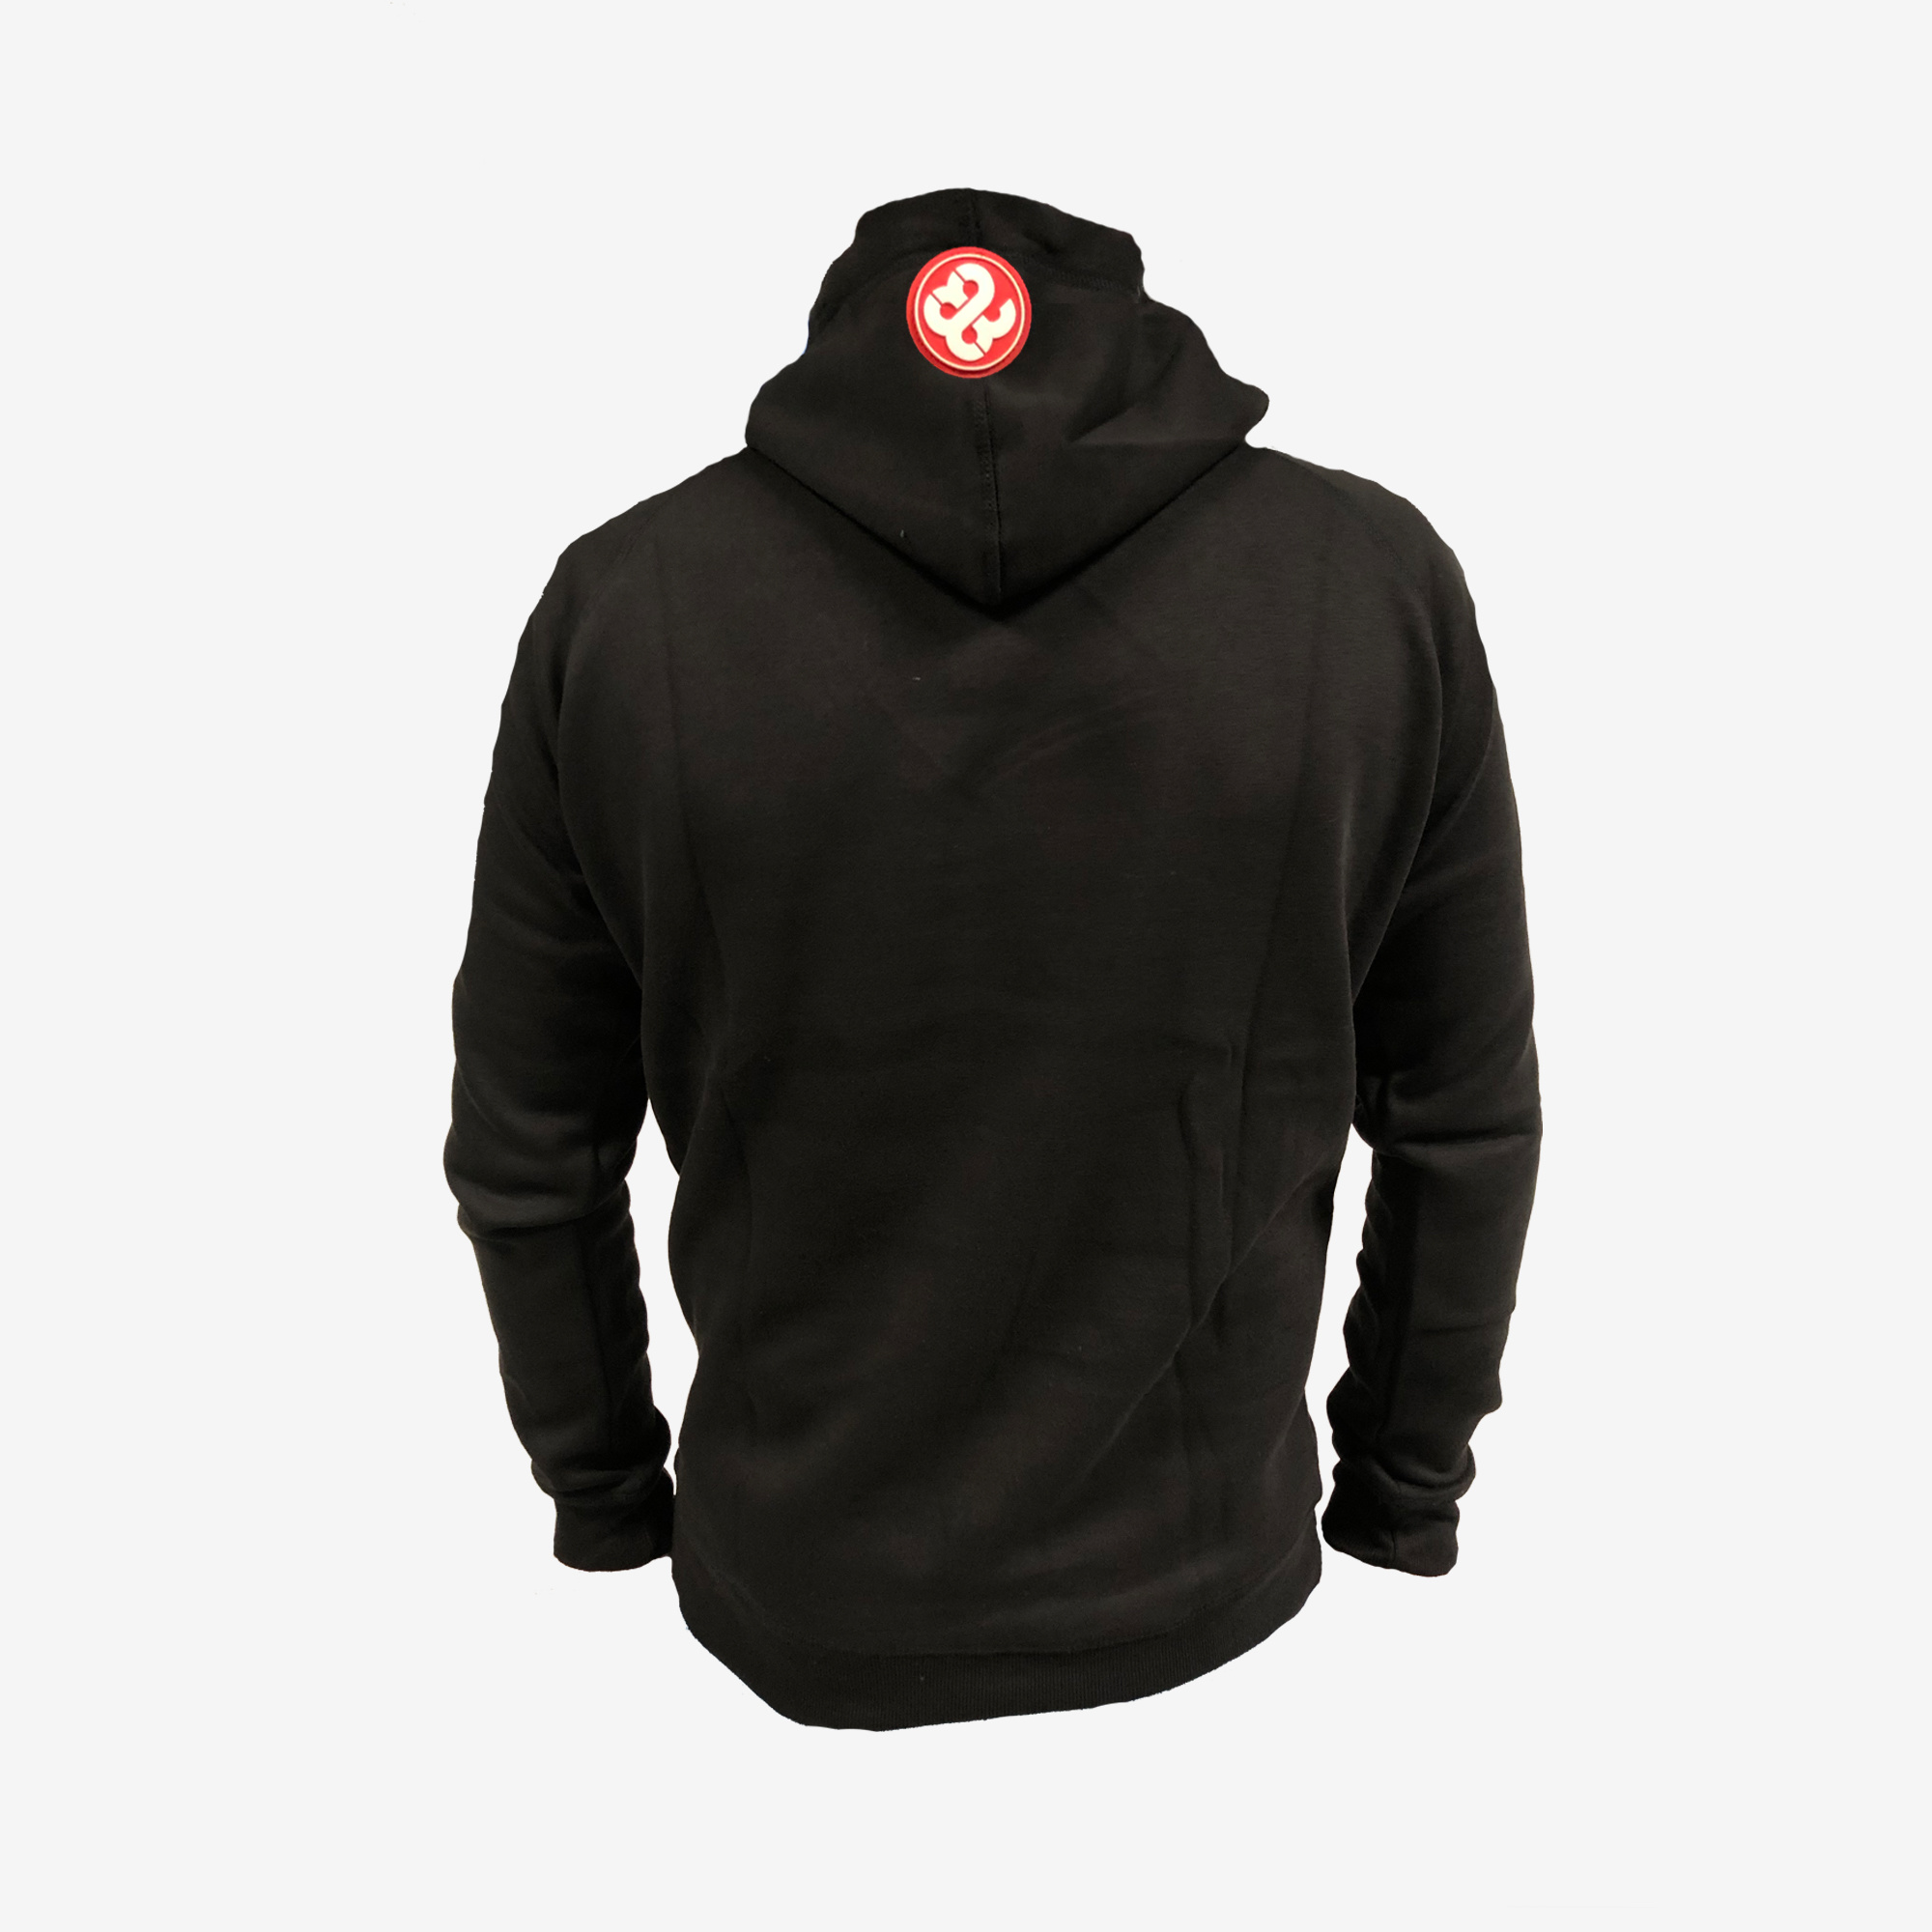 Bass Events - Black 2020 Hoody